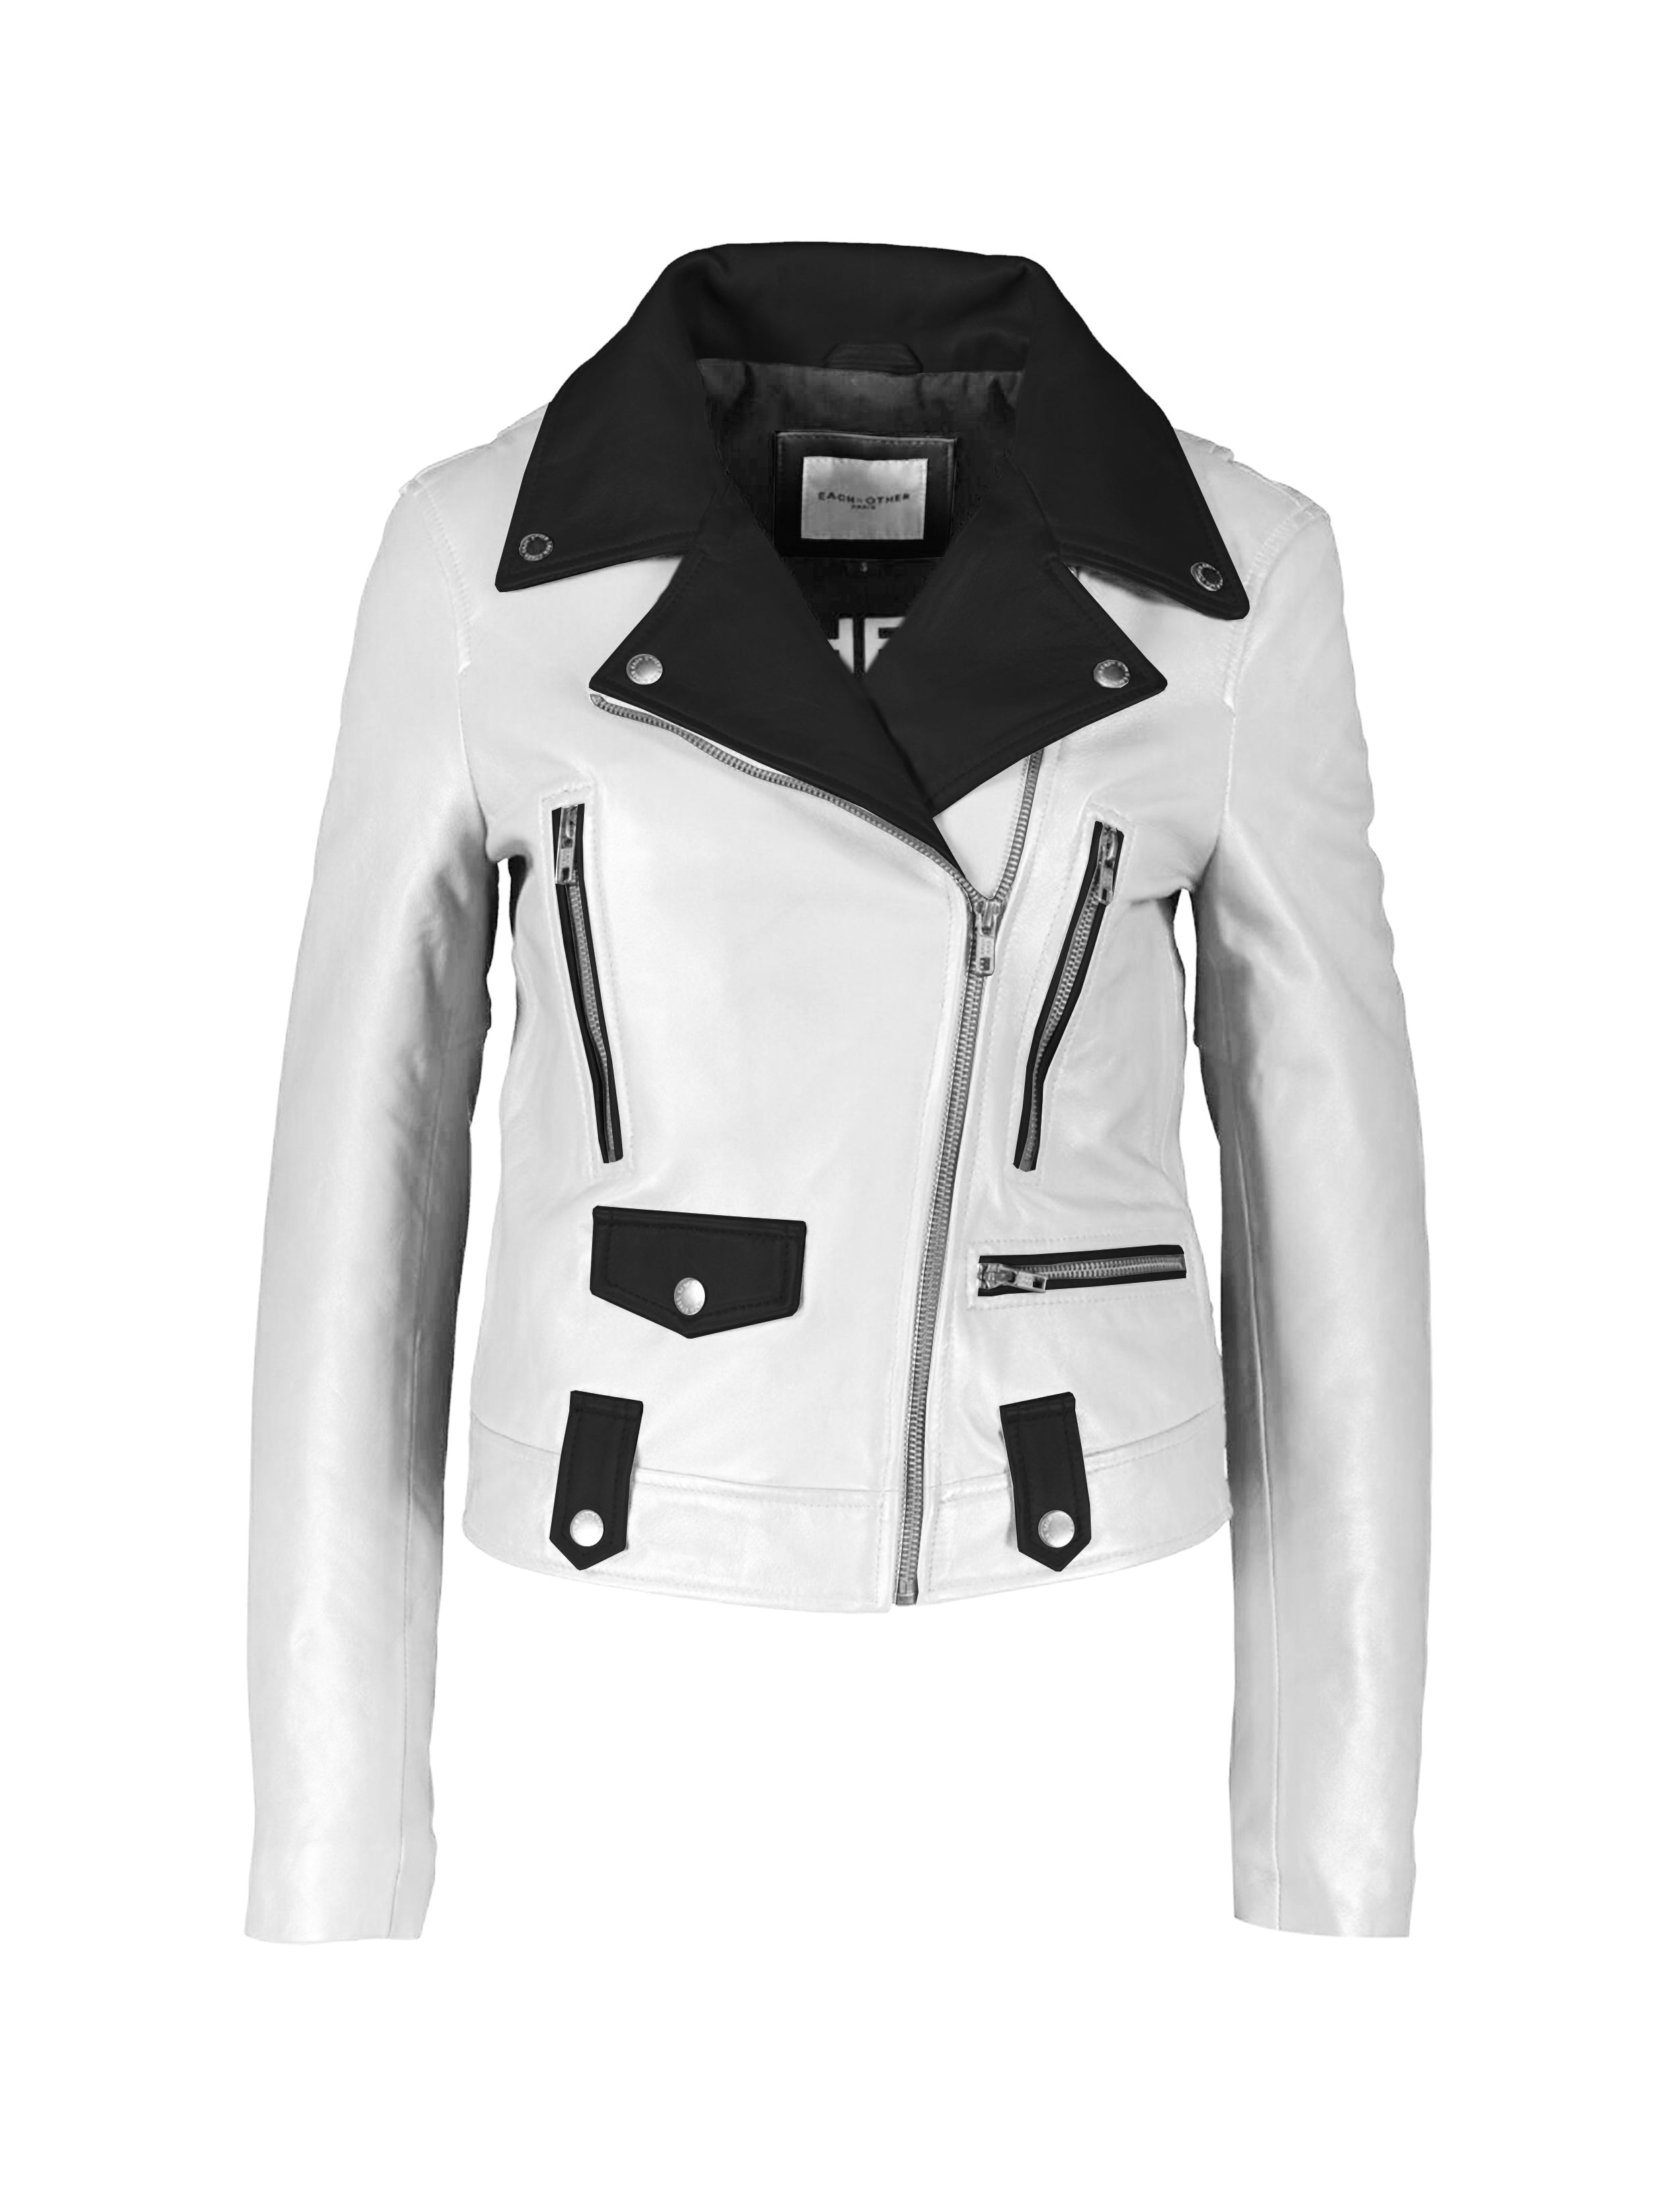 WHITE AND BLACK LEATHER DUO TONE MOTORCYCLE JACKET